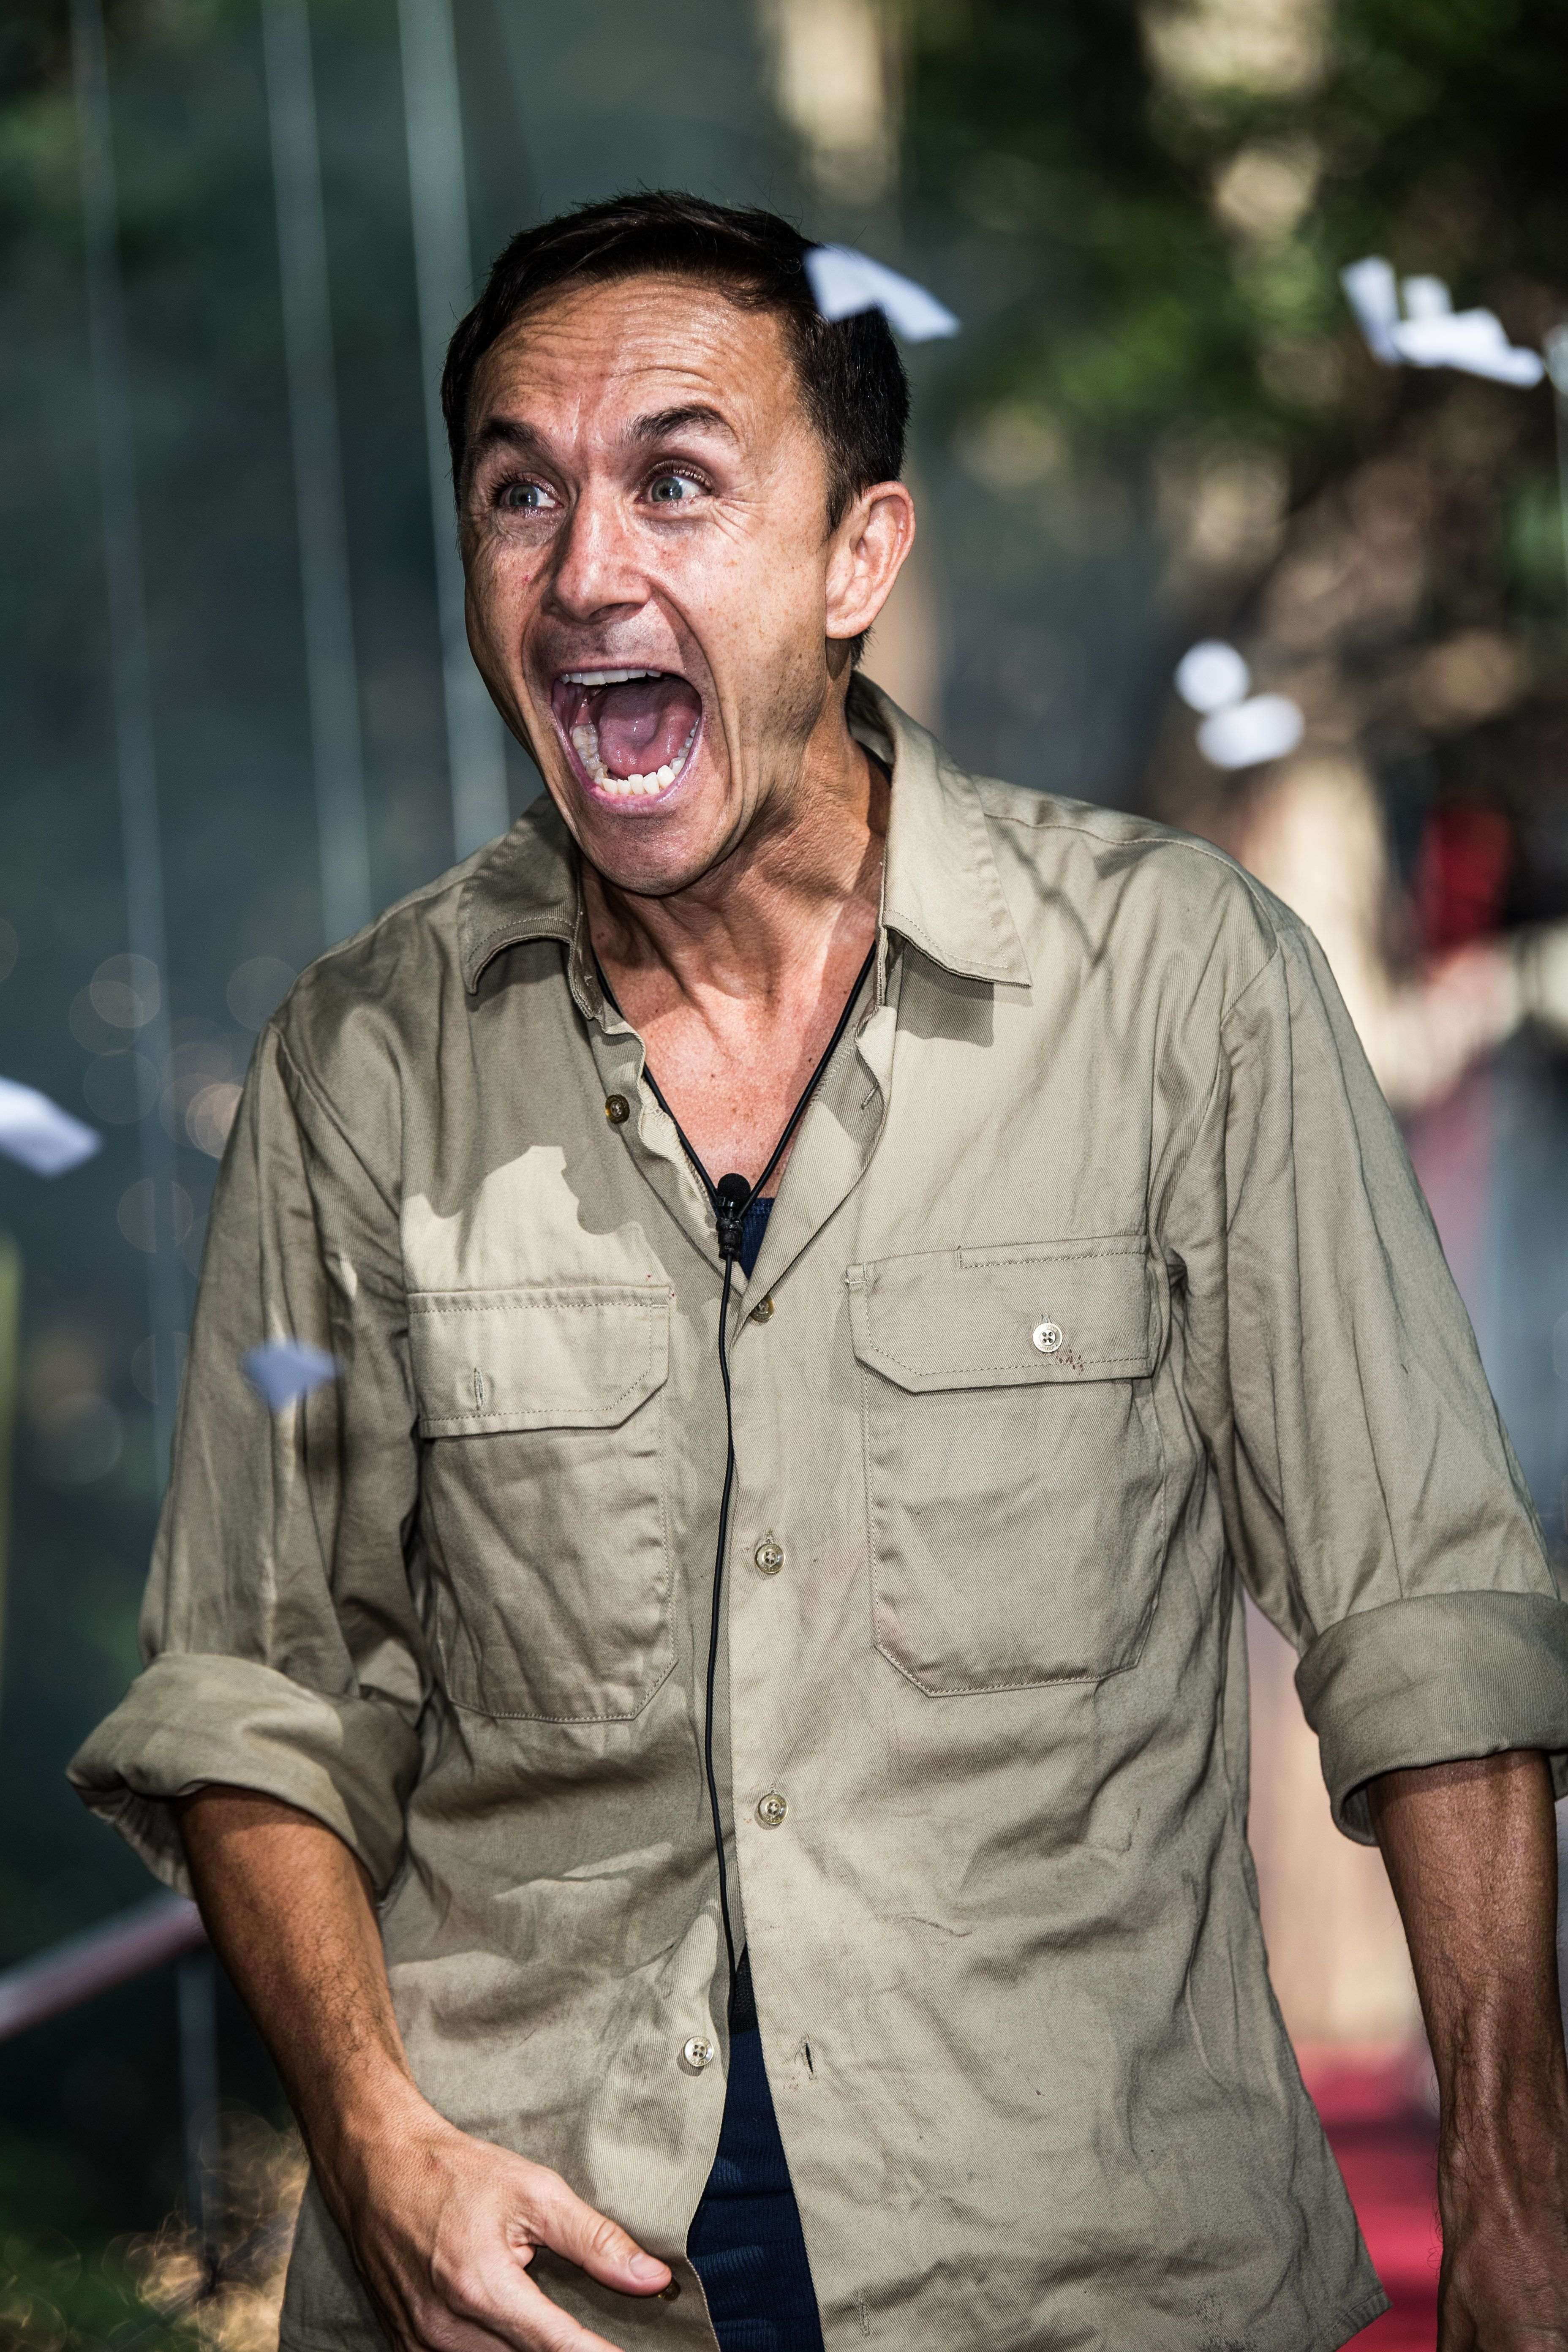 'I'm A Celebrity' Fans Rejoice As Dennis Wise Is Voted Off, Following 'Bullying'